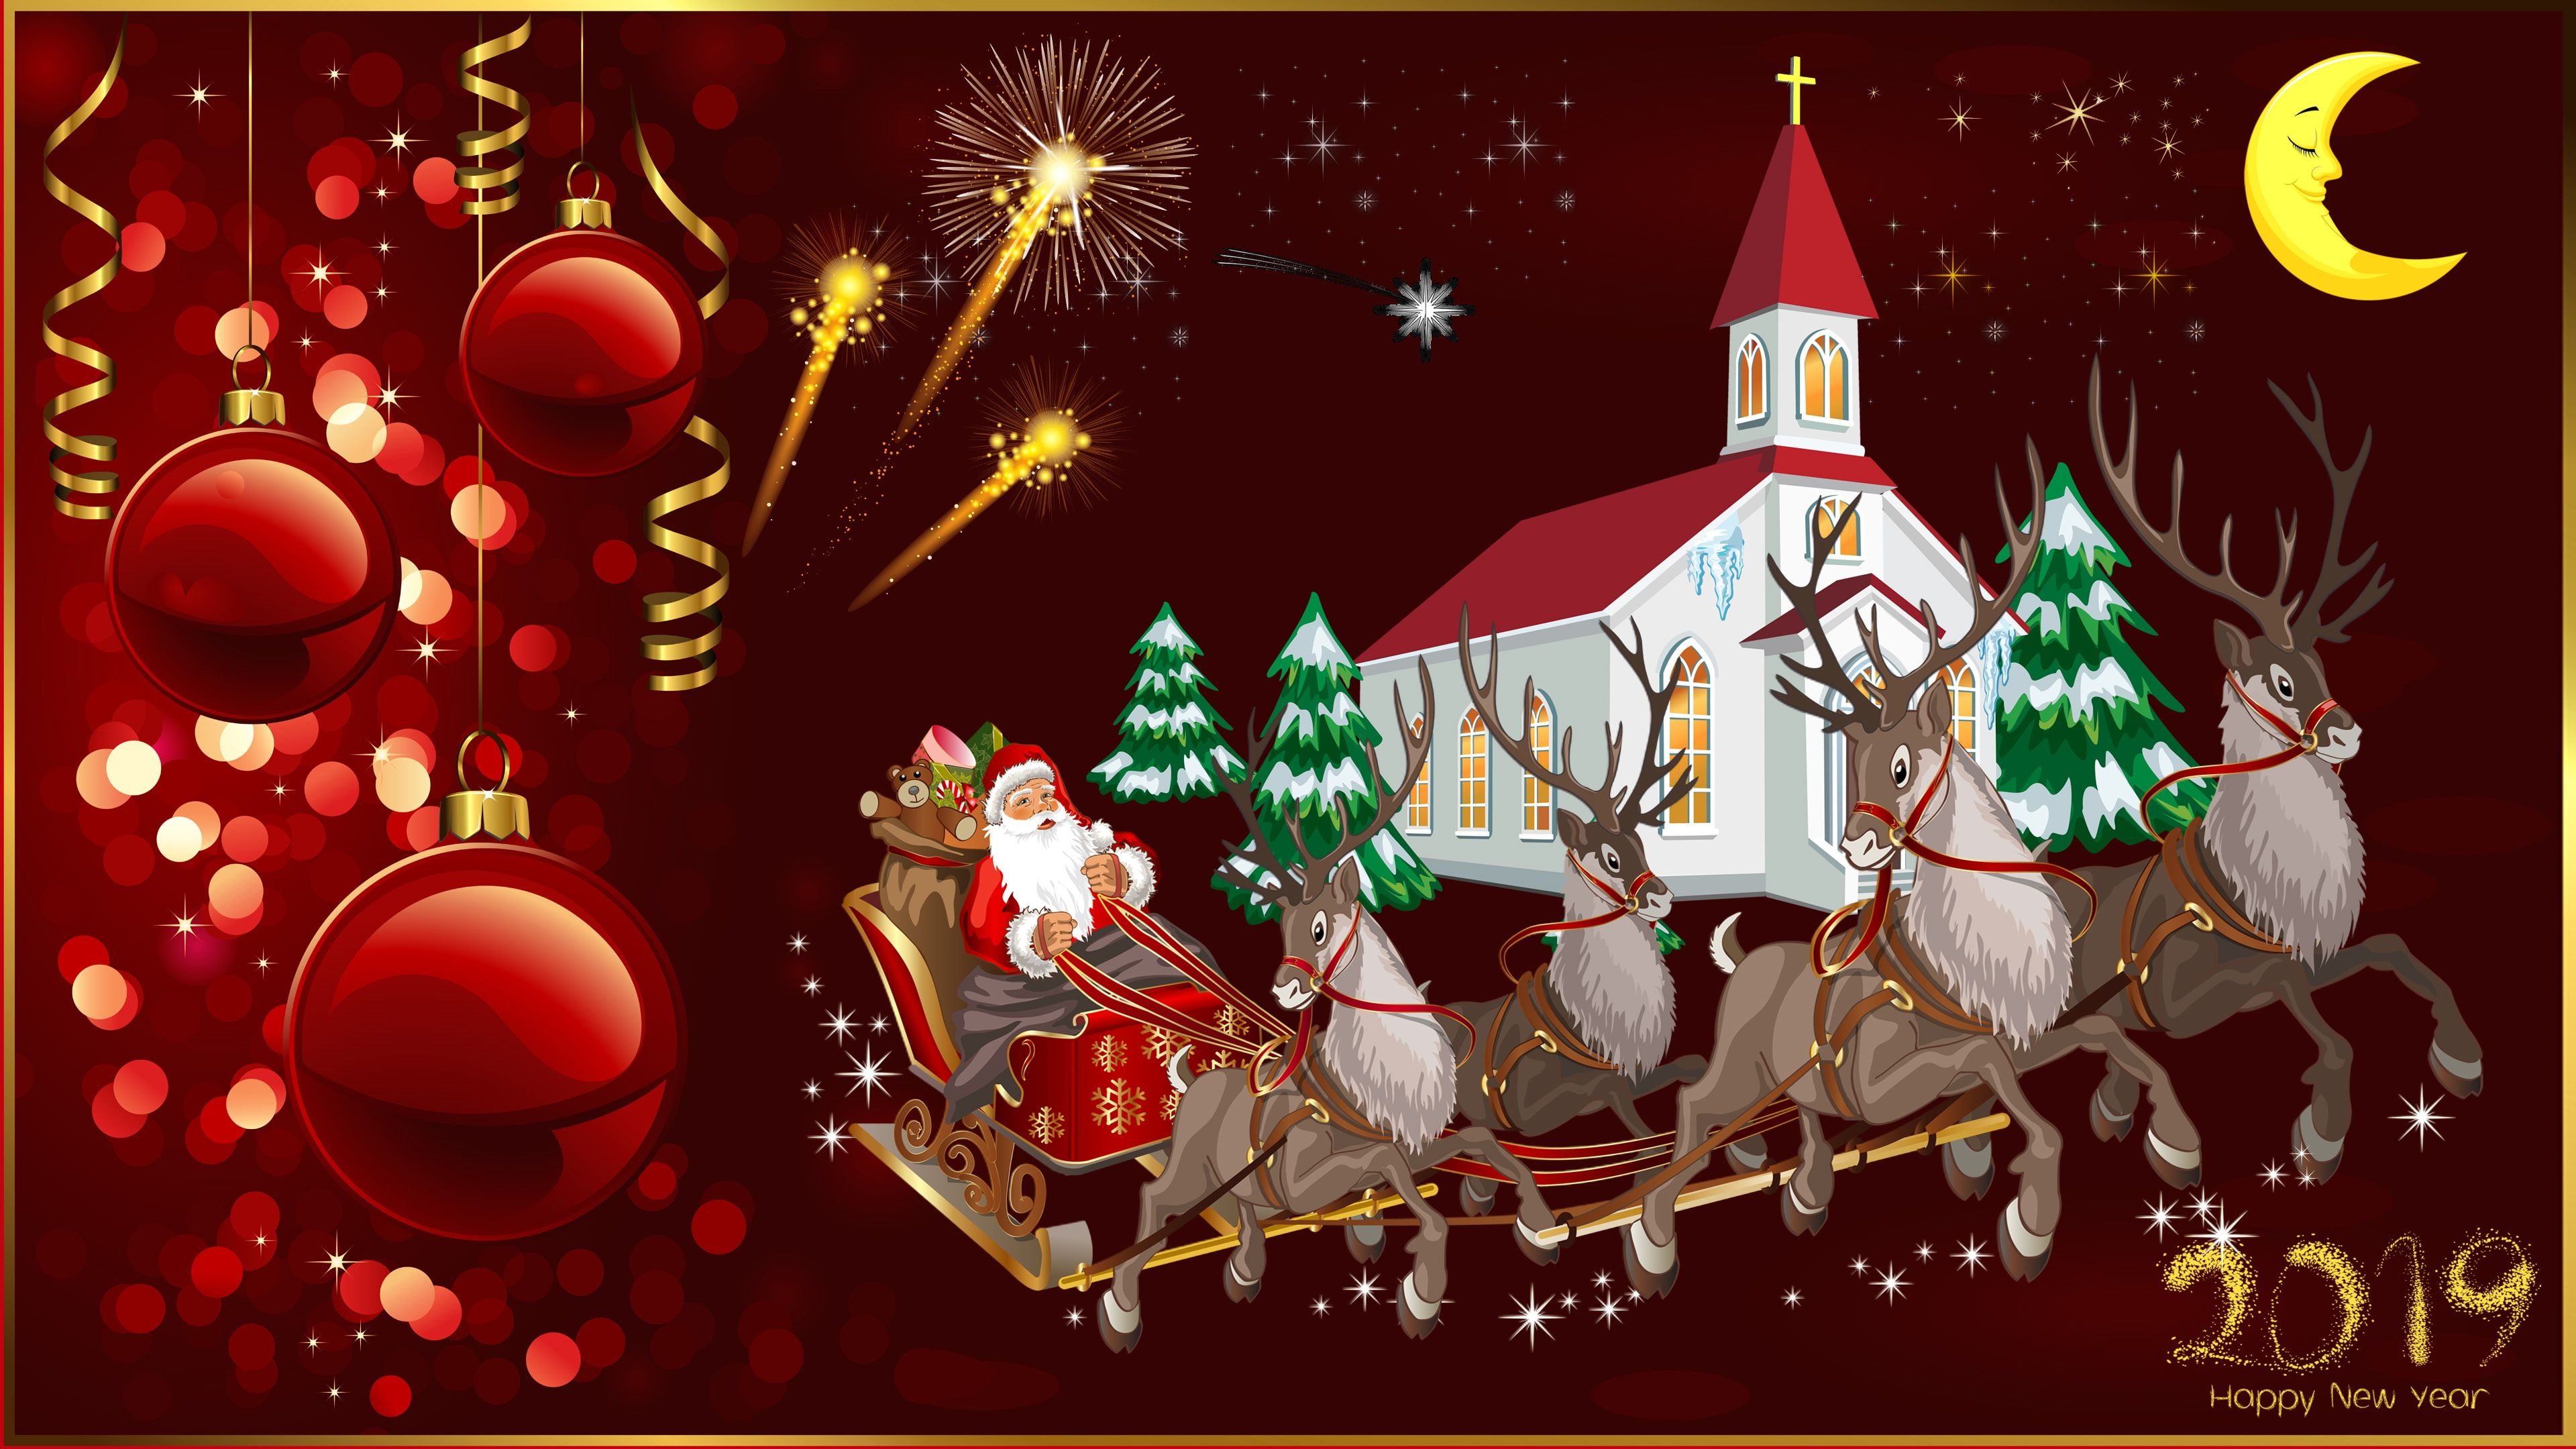 Happy New Year 2019 Merry Christmas Christmas Greeting Card Santa Claus And Reindeer Church Ch Happy Christmas Day Christmas Greetings Christmas Greeting Cards